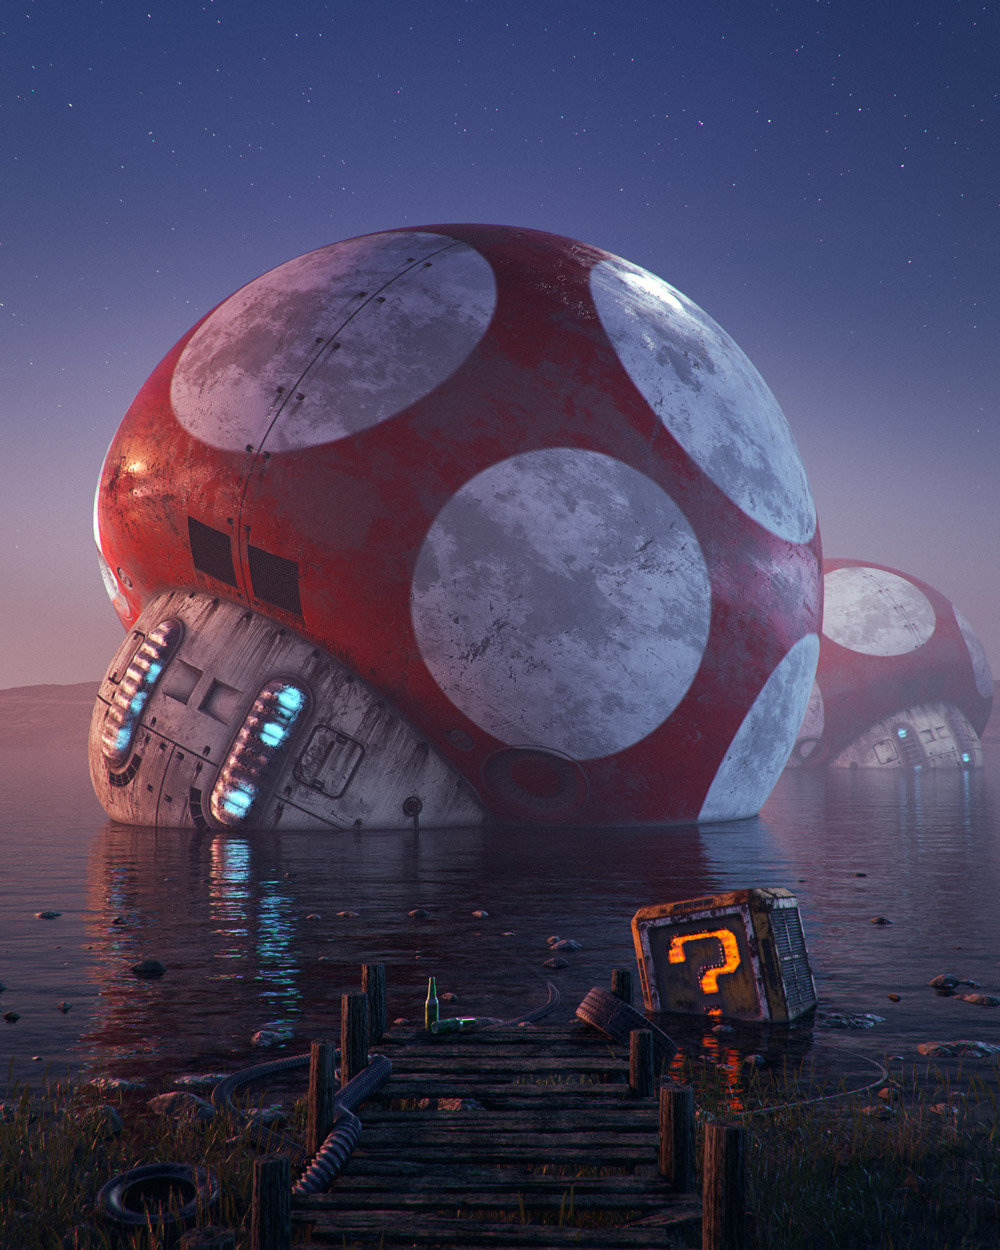 filip-hodas-visual-atelier-8-art-5.jpg